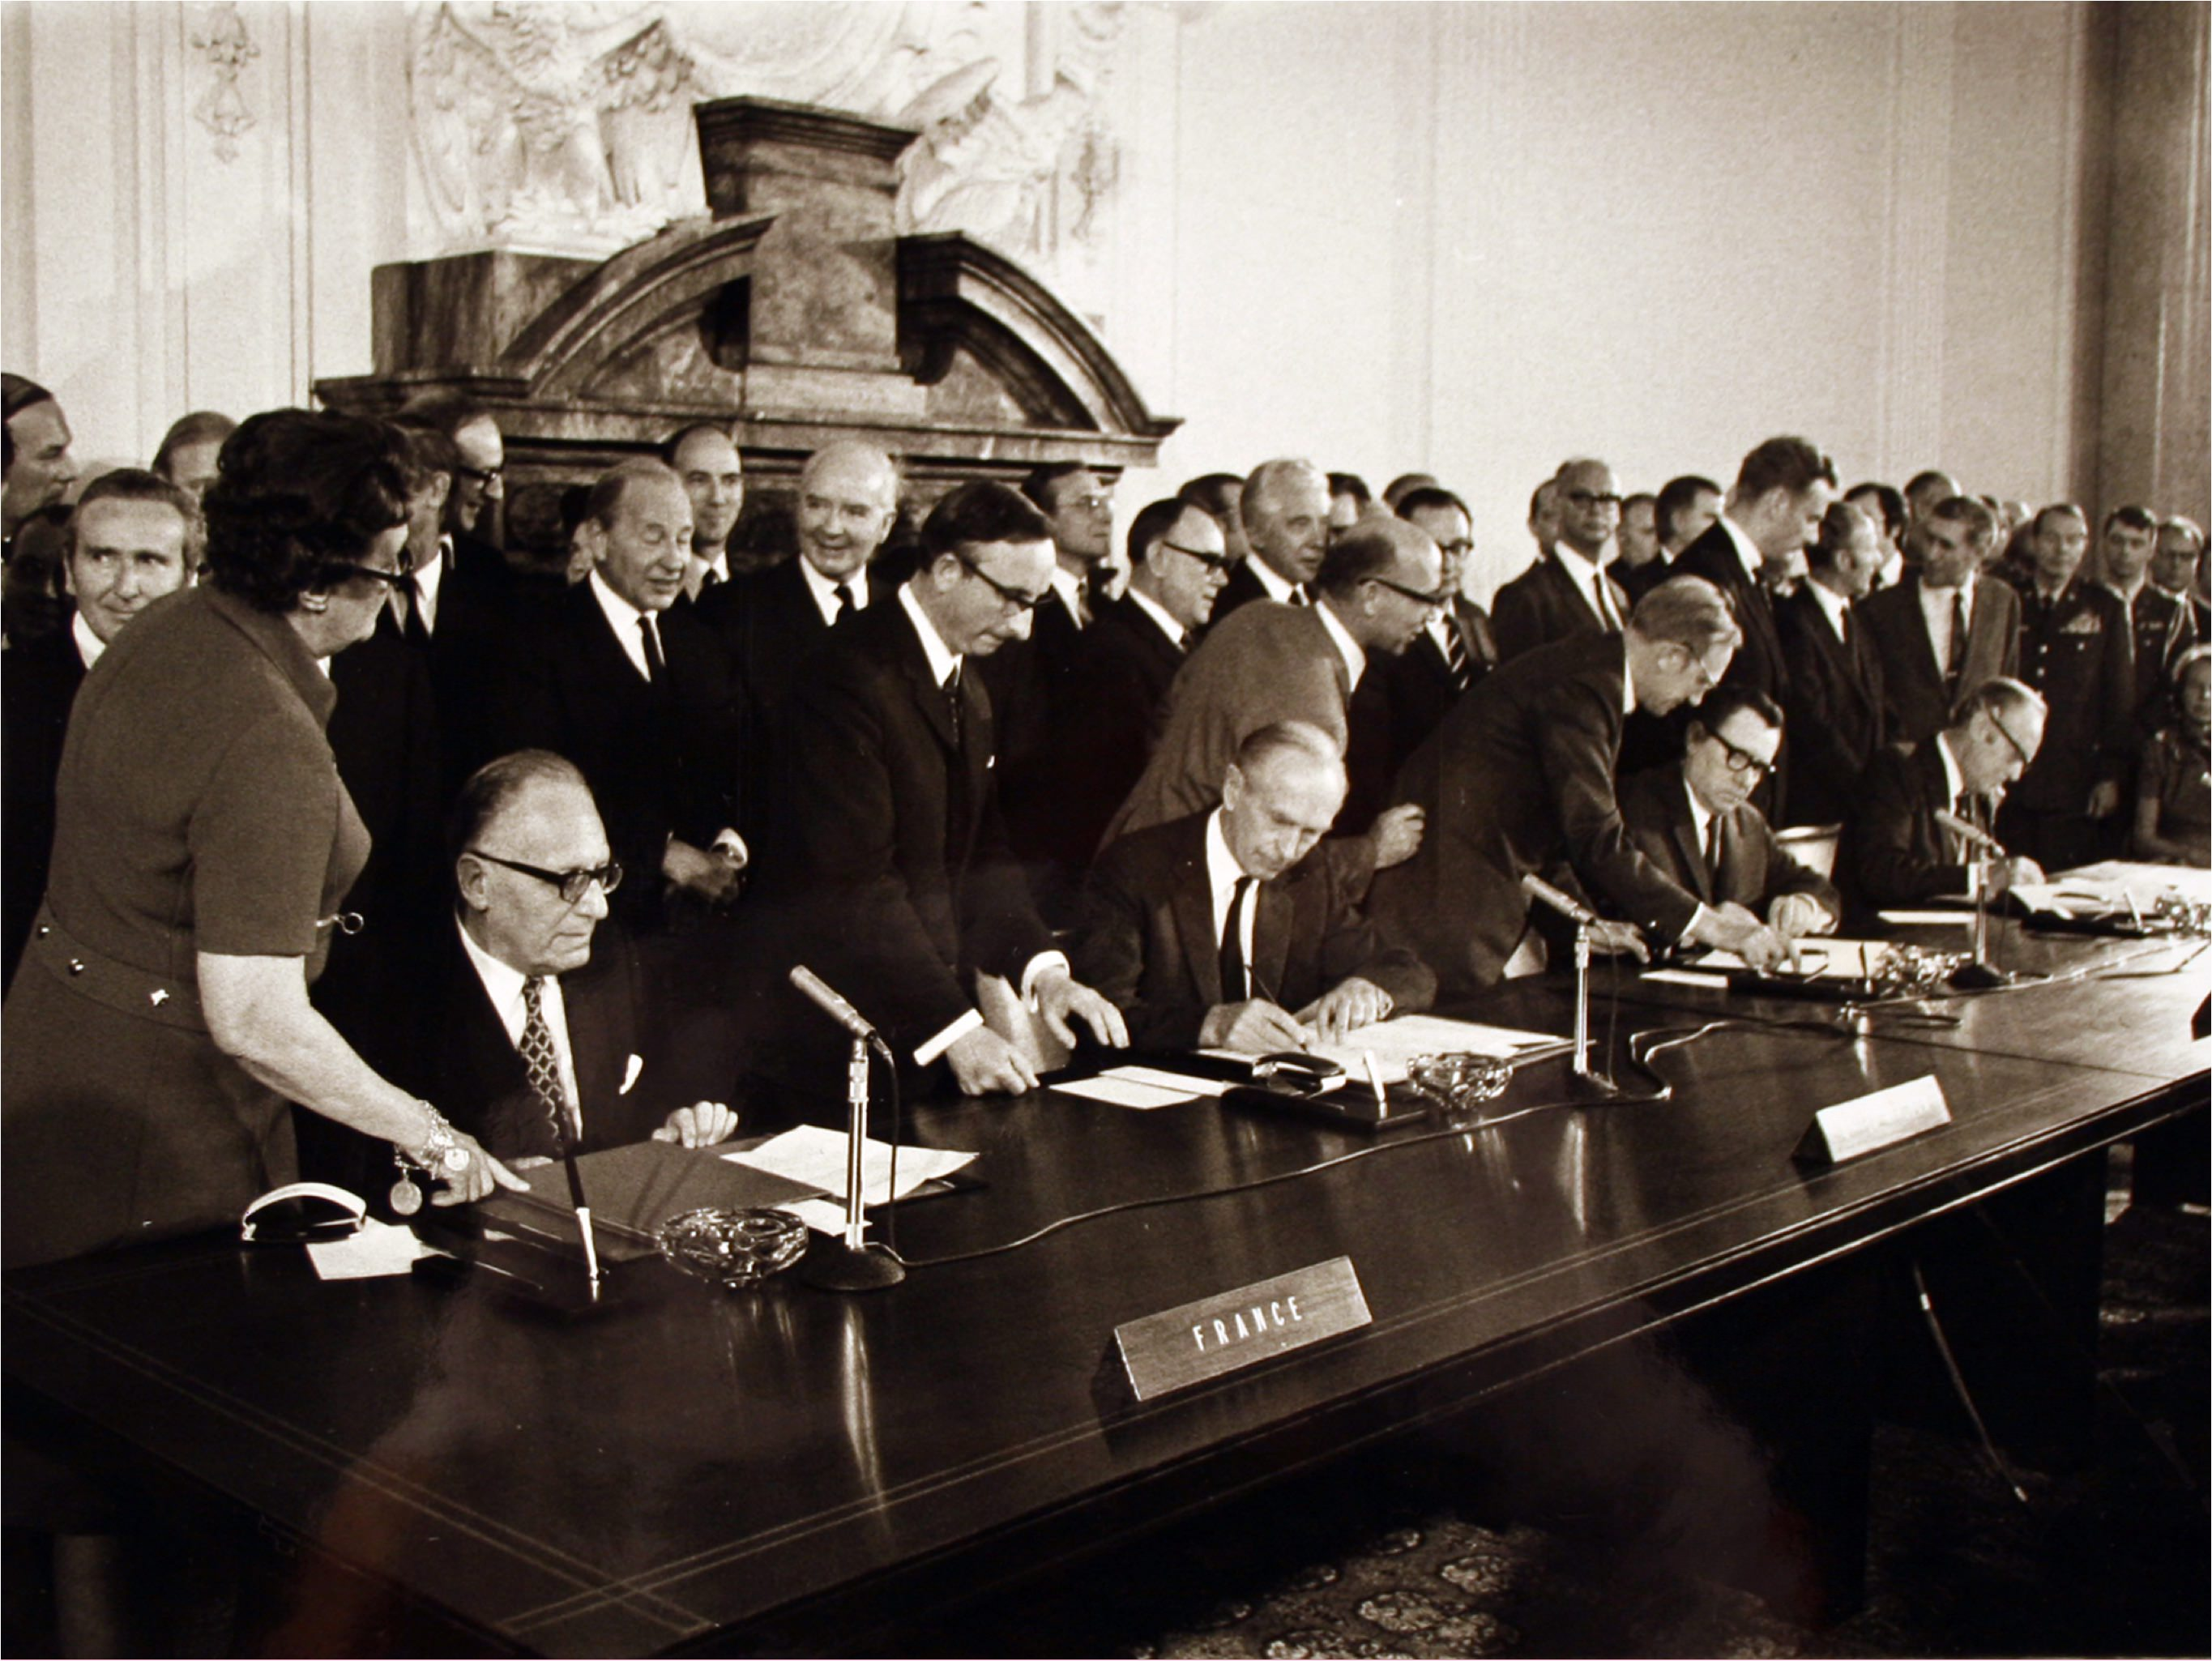 From left, French Foreign Minister Maurice Schumann, British Foreign Minister Alexander Douglas-Home, Russian Foreign Minister Andrei Gromyko and U.S. Secretary of State William Rogers sign the final protocol of the four power Berlin agreement in West Berlin.